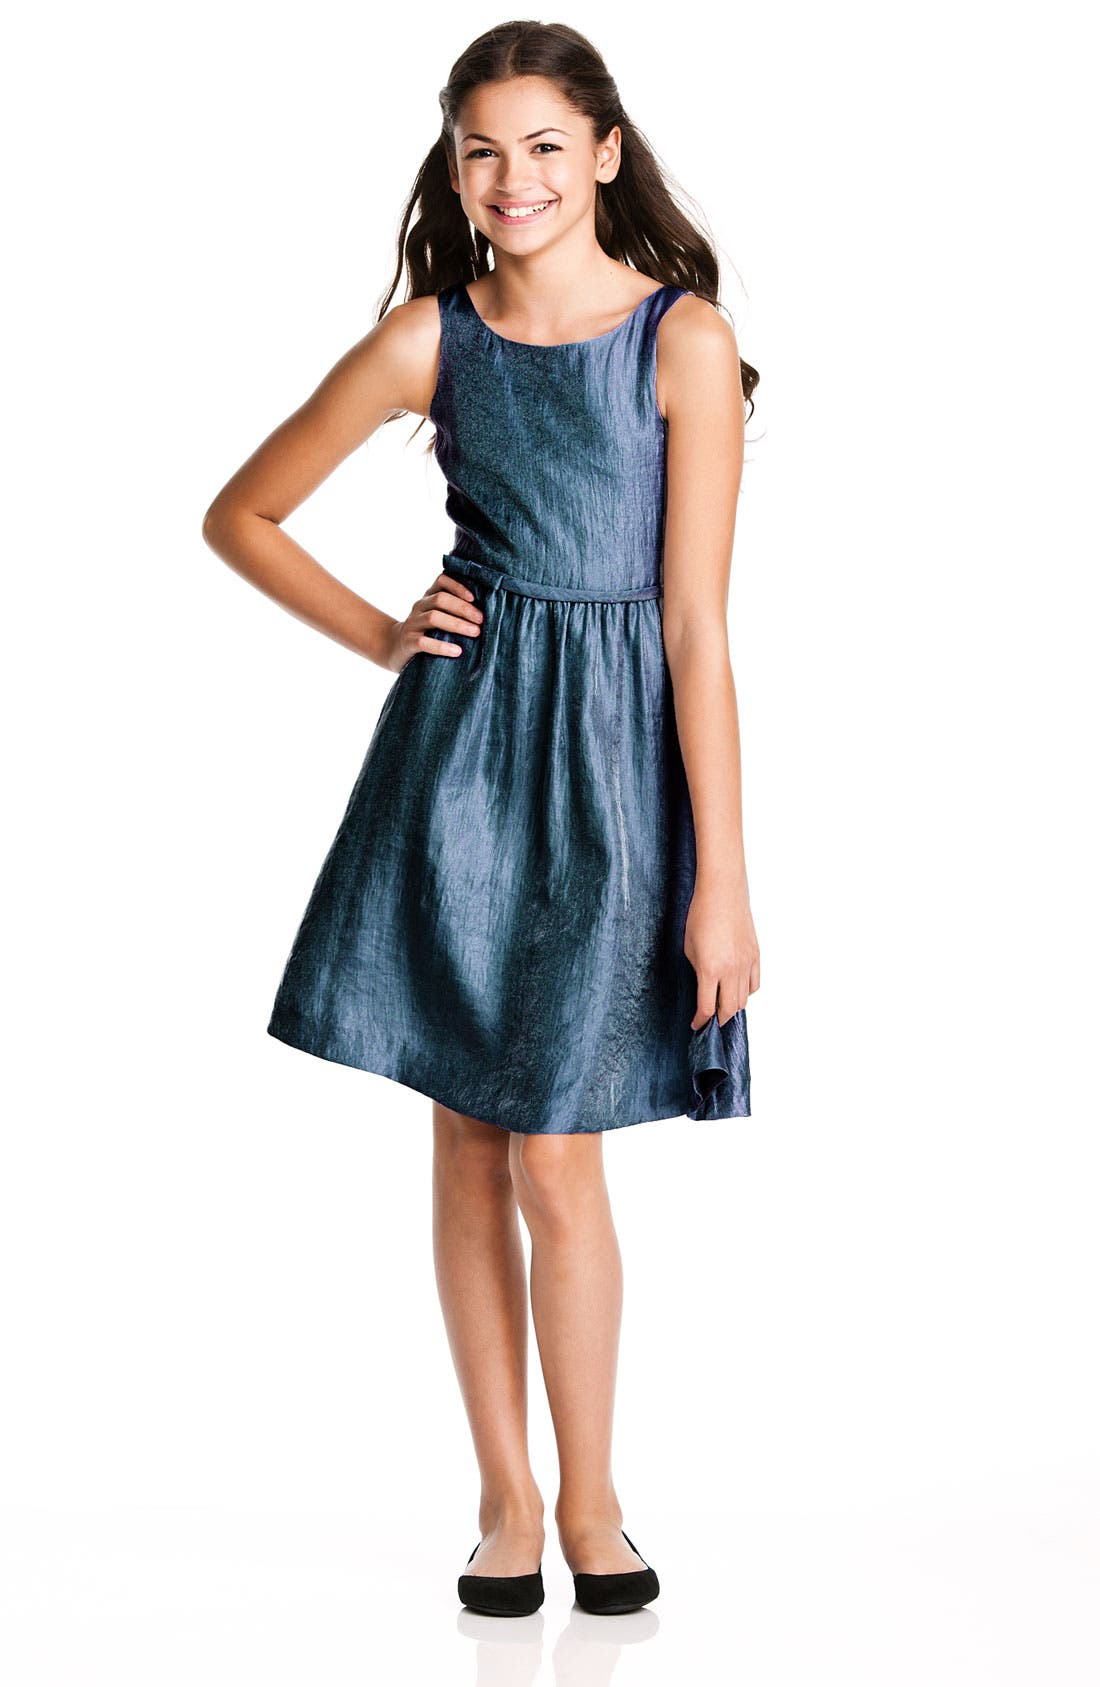 Alternate Image 1 Selected - BLUSH by Us Angels Textured Sheen Dress (Big Girls)